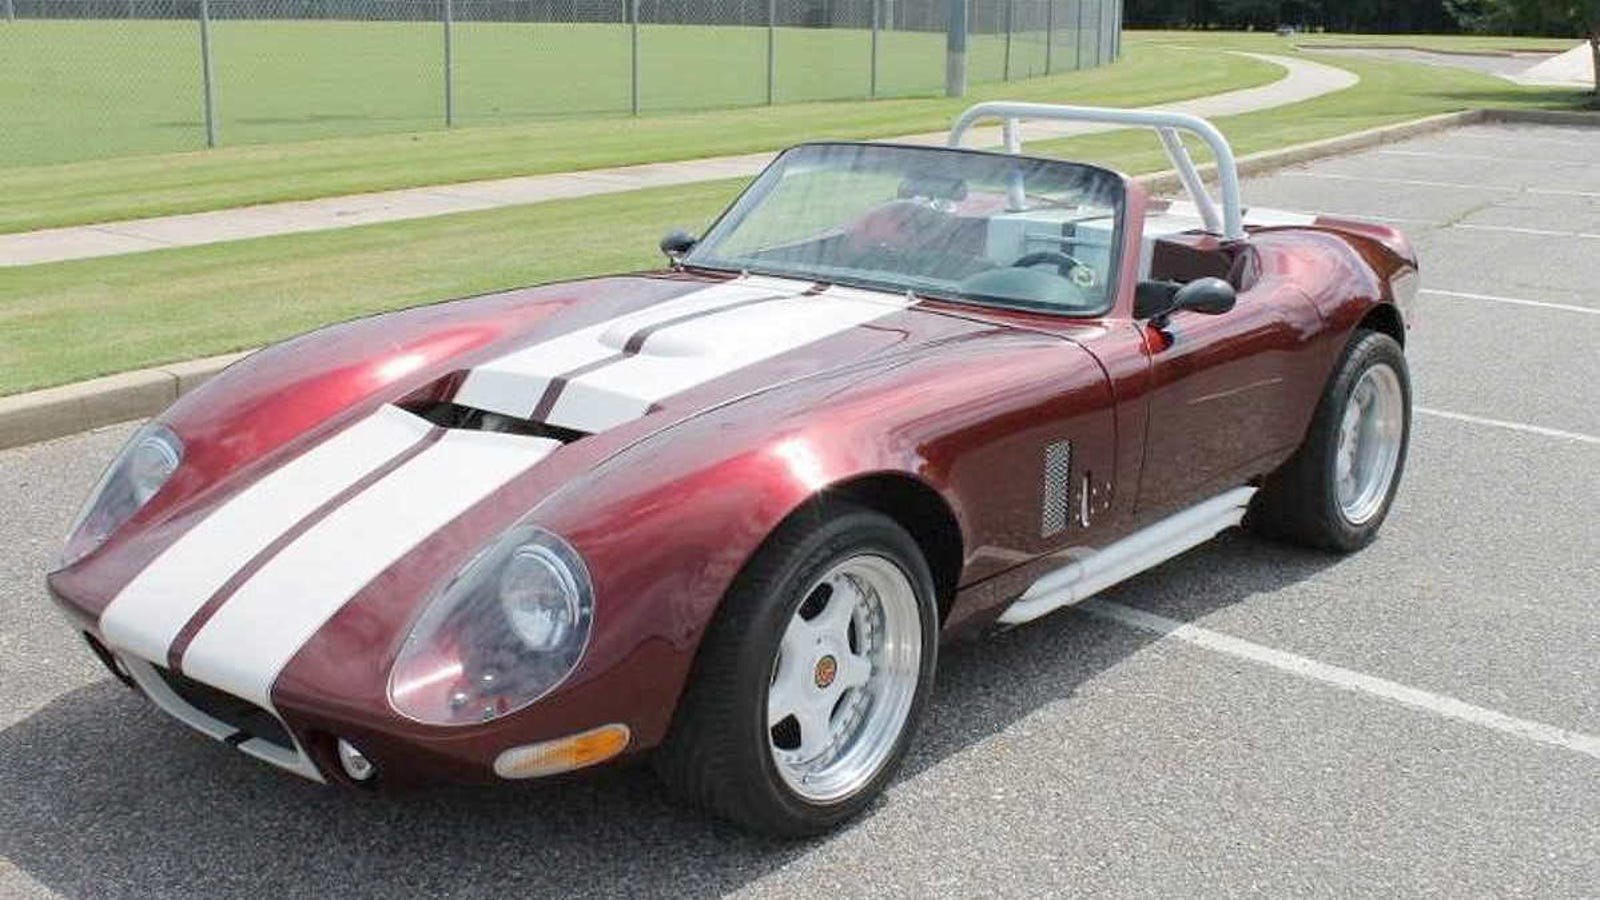 At $35,000, Could This Custom '1965' Factory Five Daytona Spyder Get Your Heart Racing?